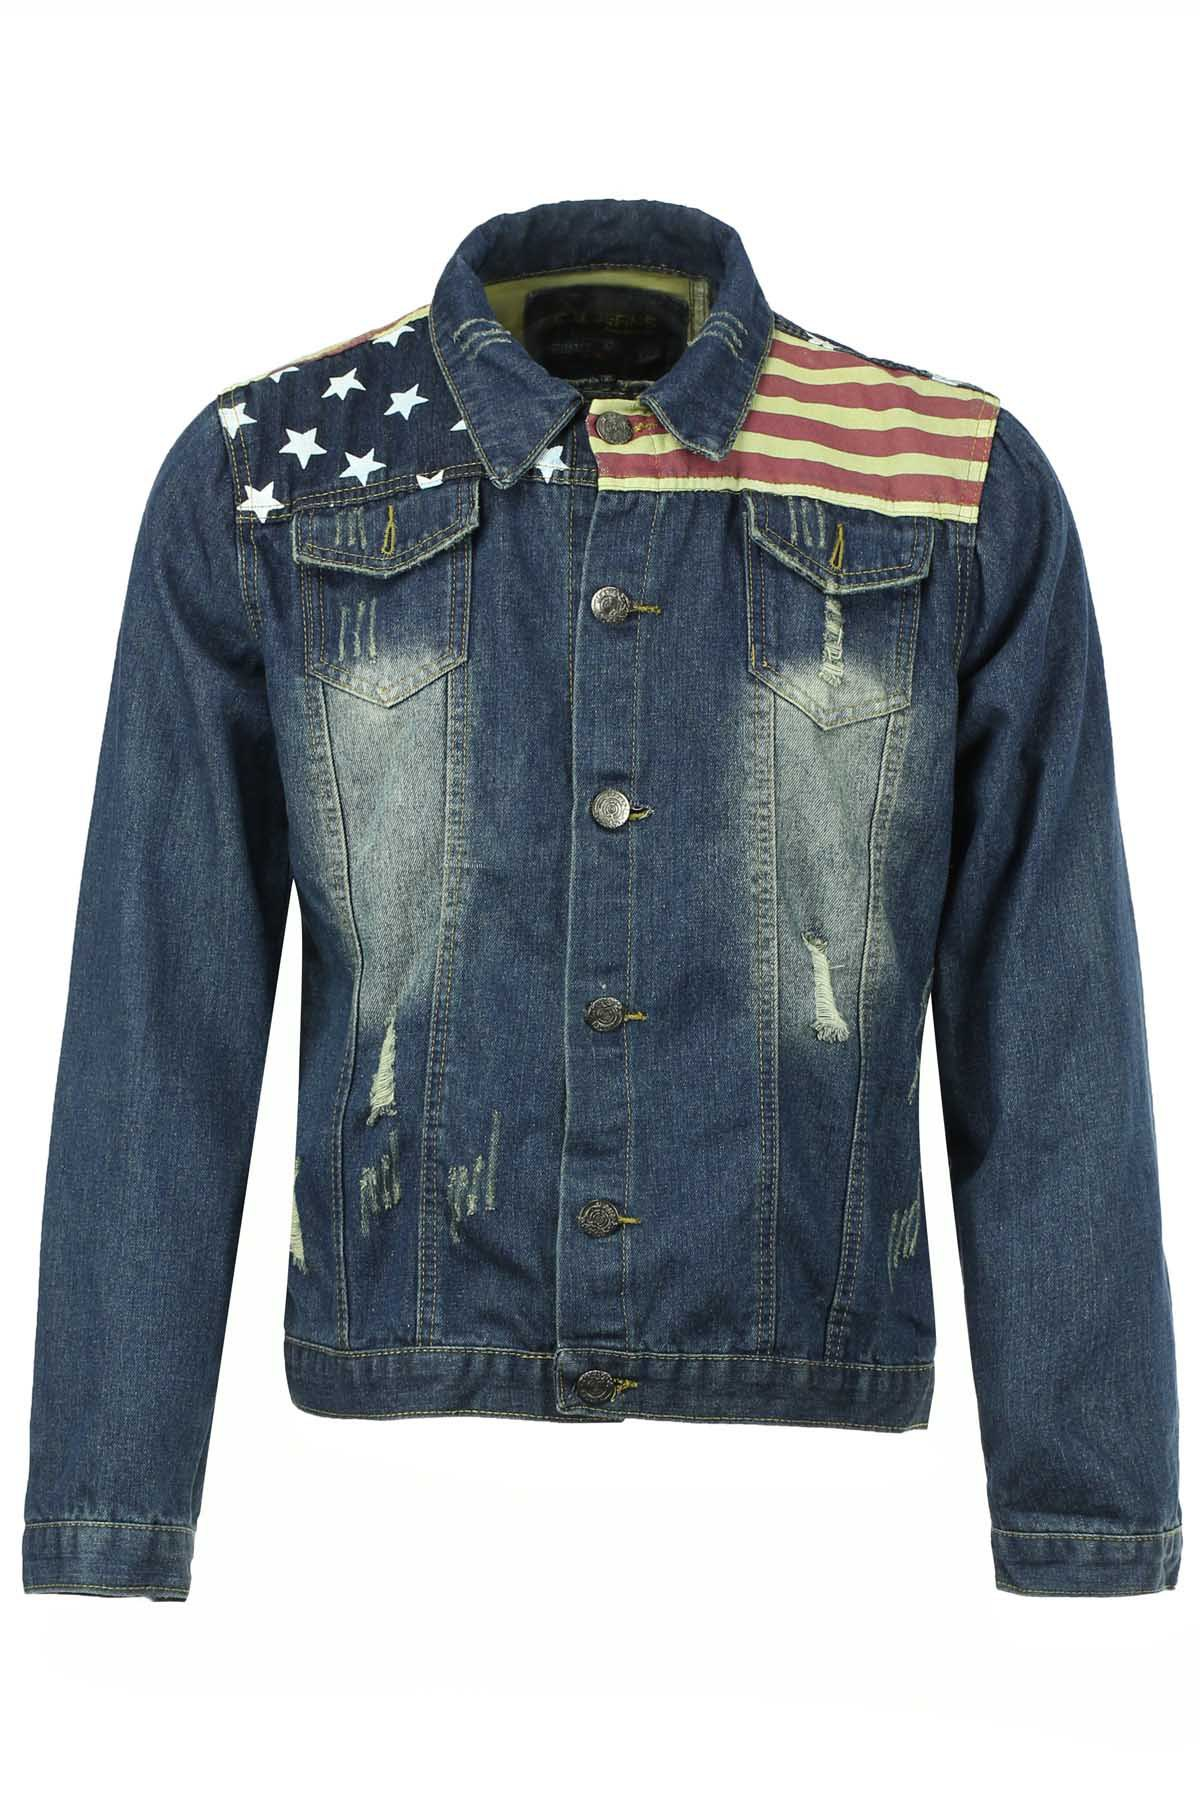 Stylish Turn-down Collar Slimming Five-Pointed Star and Stripes Print Destroy Wash Long Sleeves Men's Denim Jacket